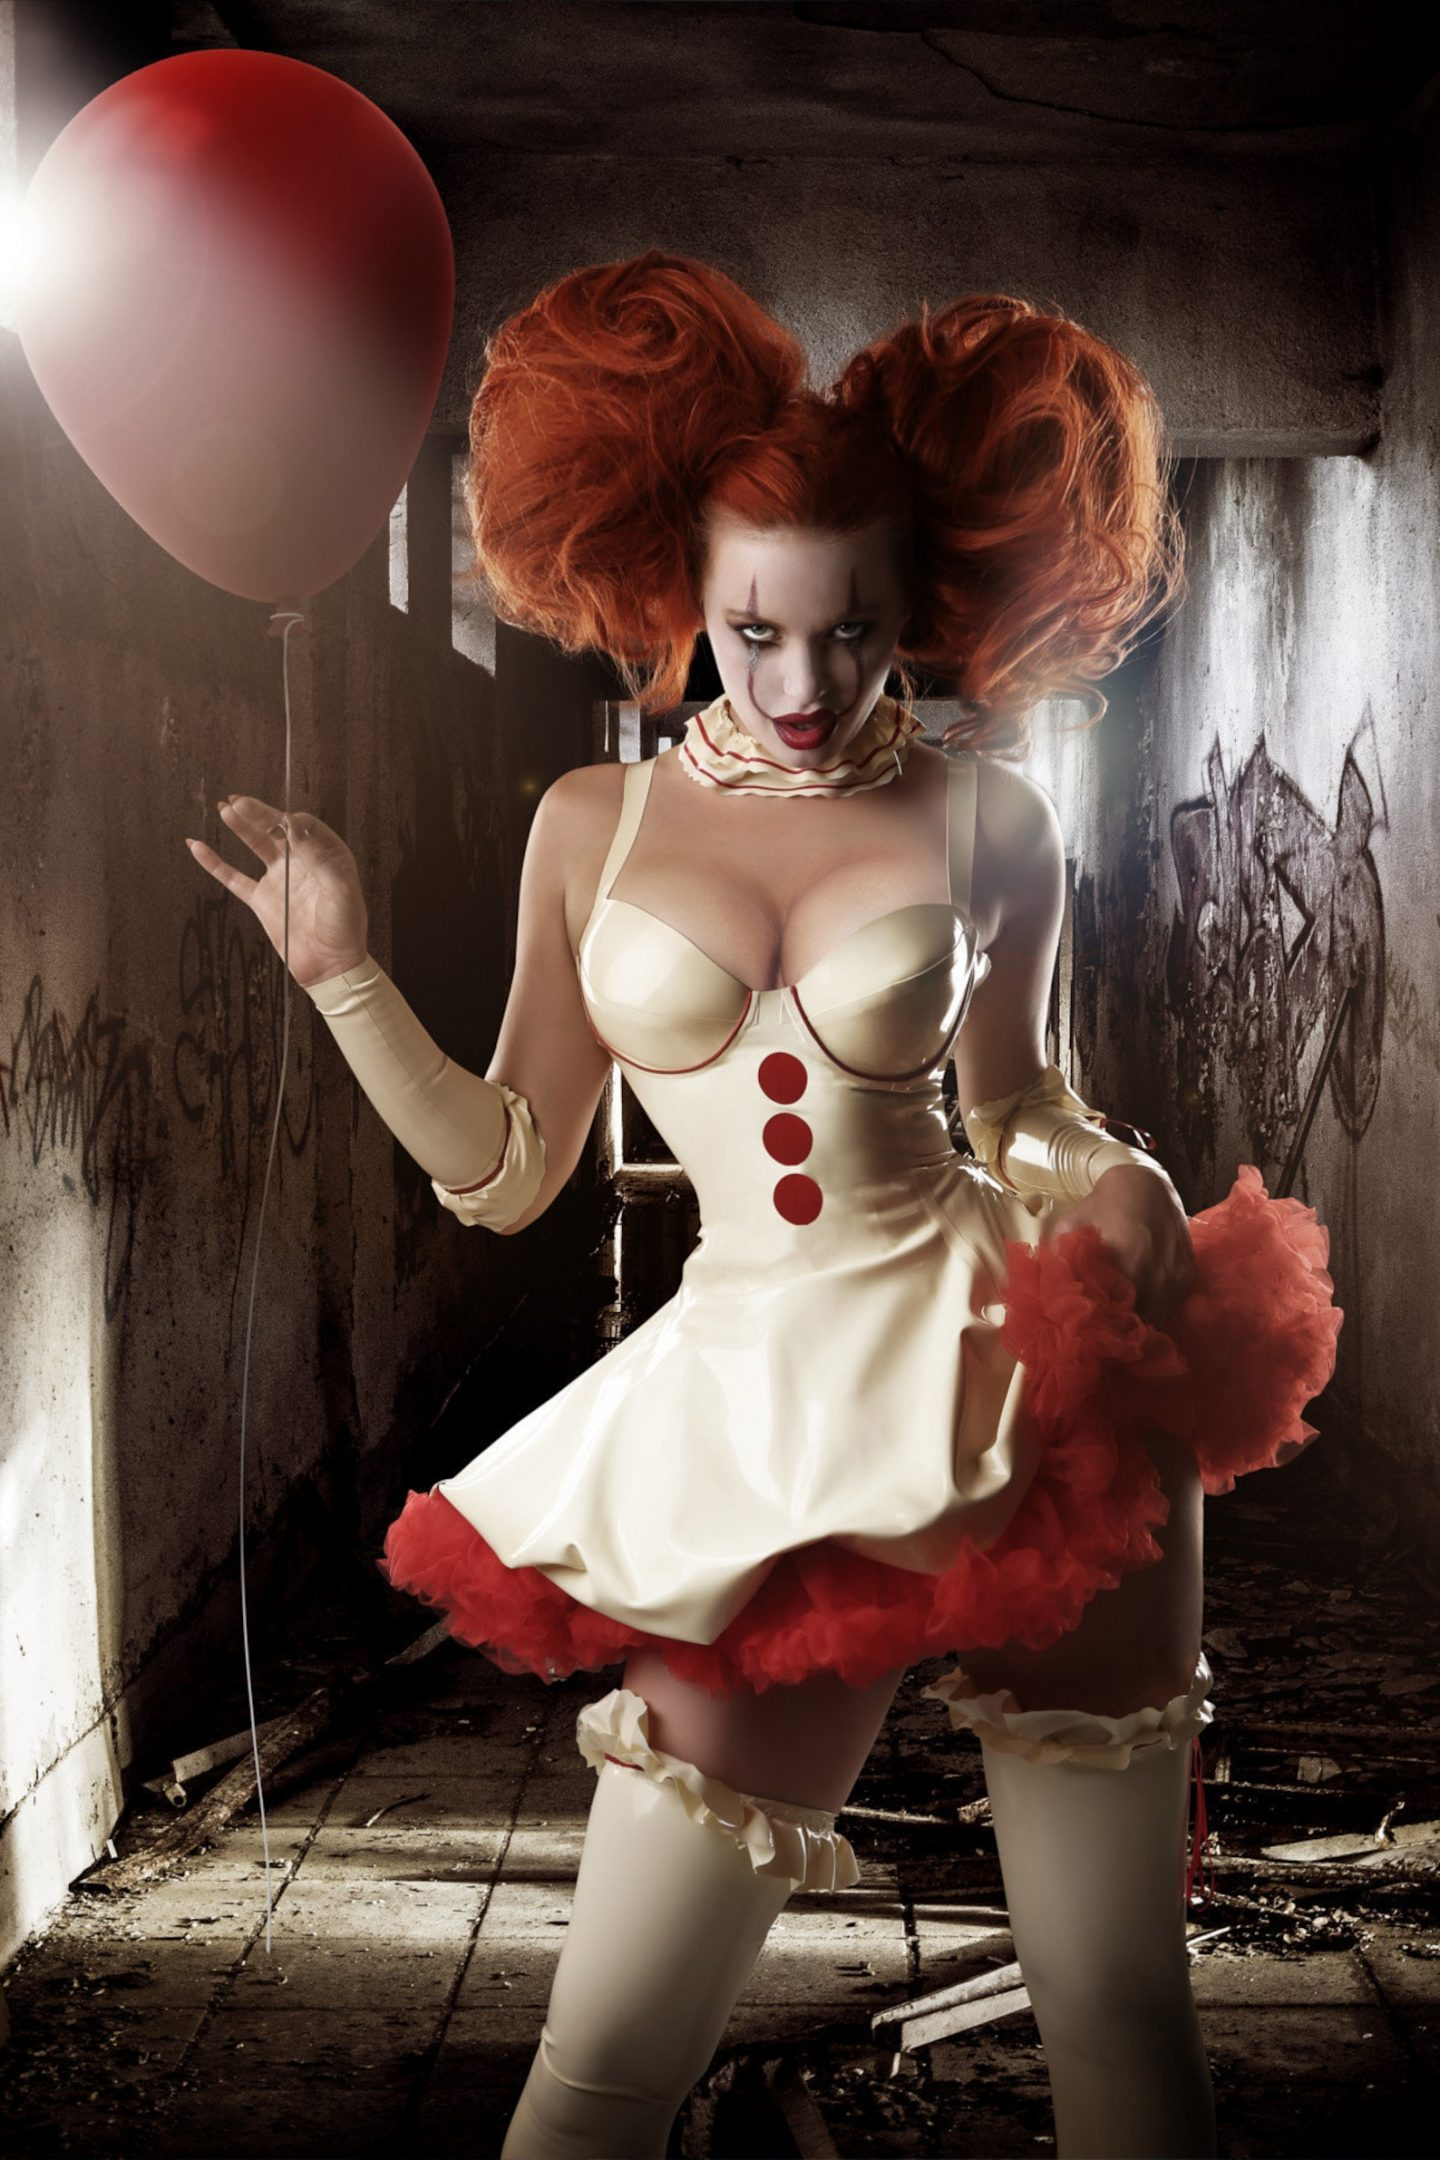 Hot Pennywise Halloween costume for women